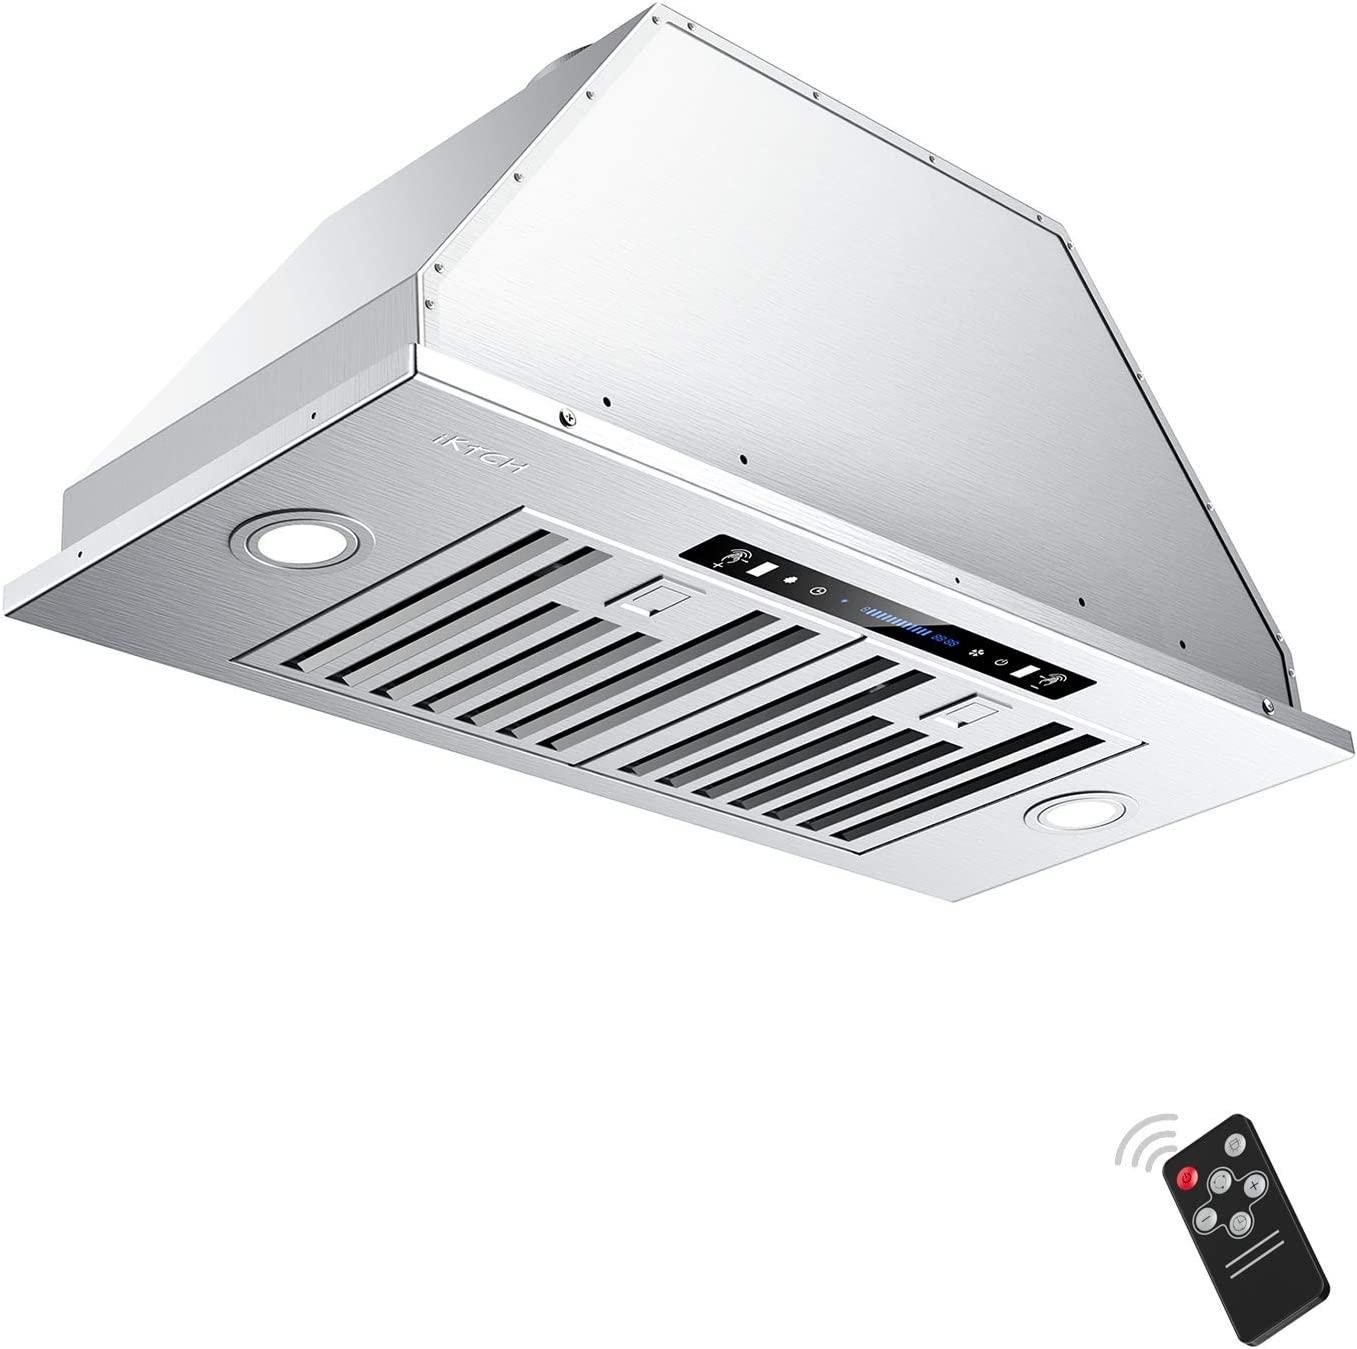 Top 5 Best Range Hood Inserts 2021 Review Home Inspector Secrets